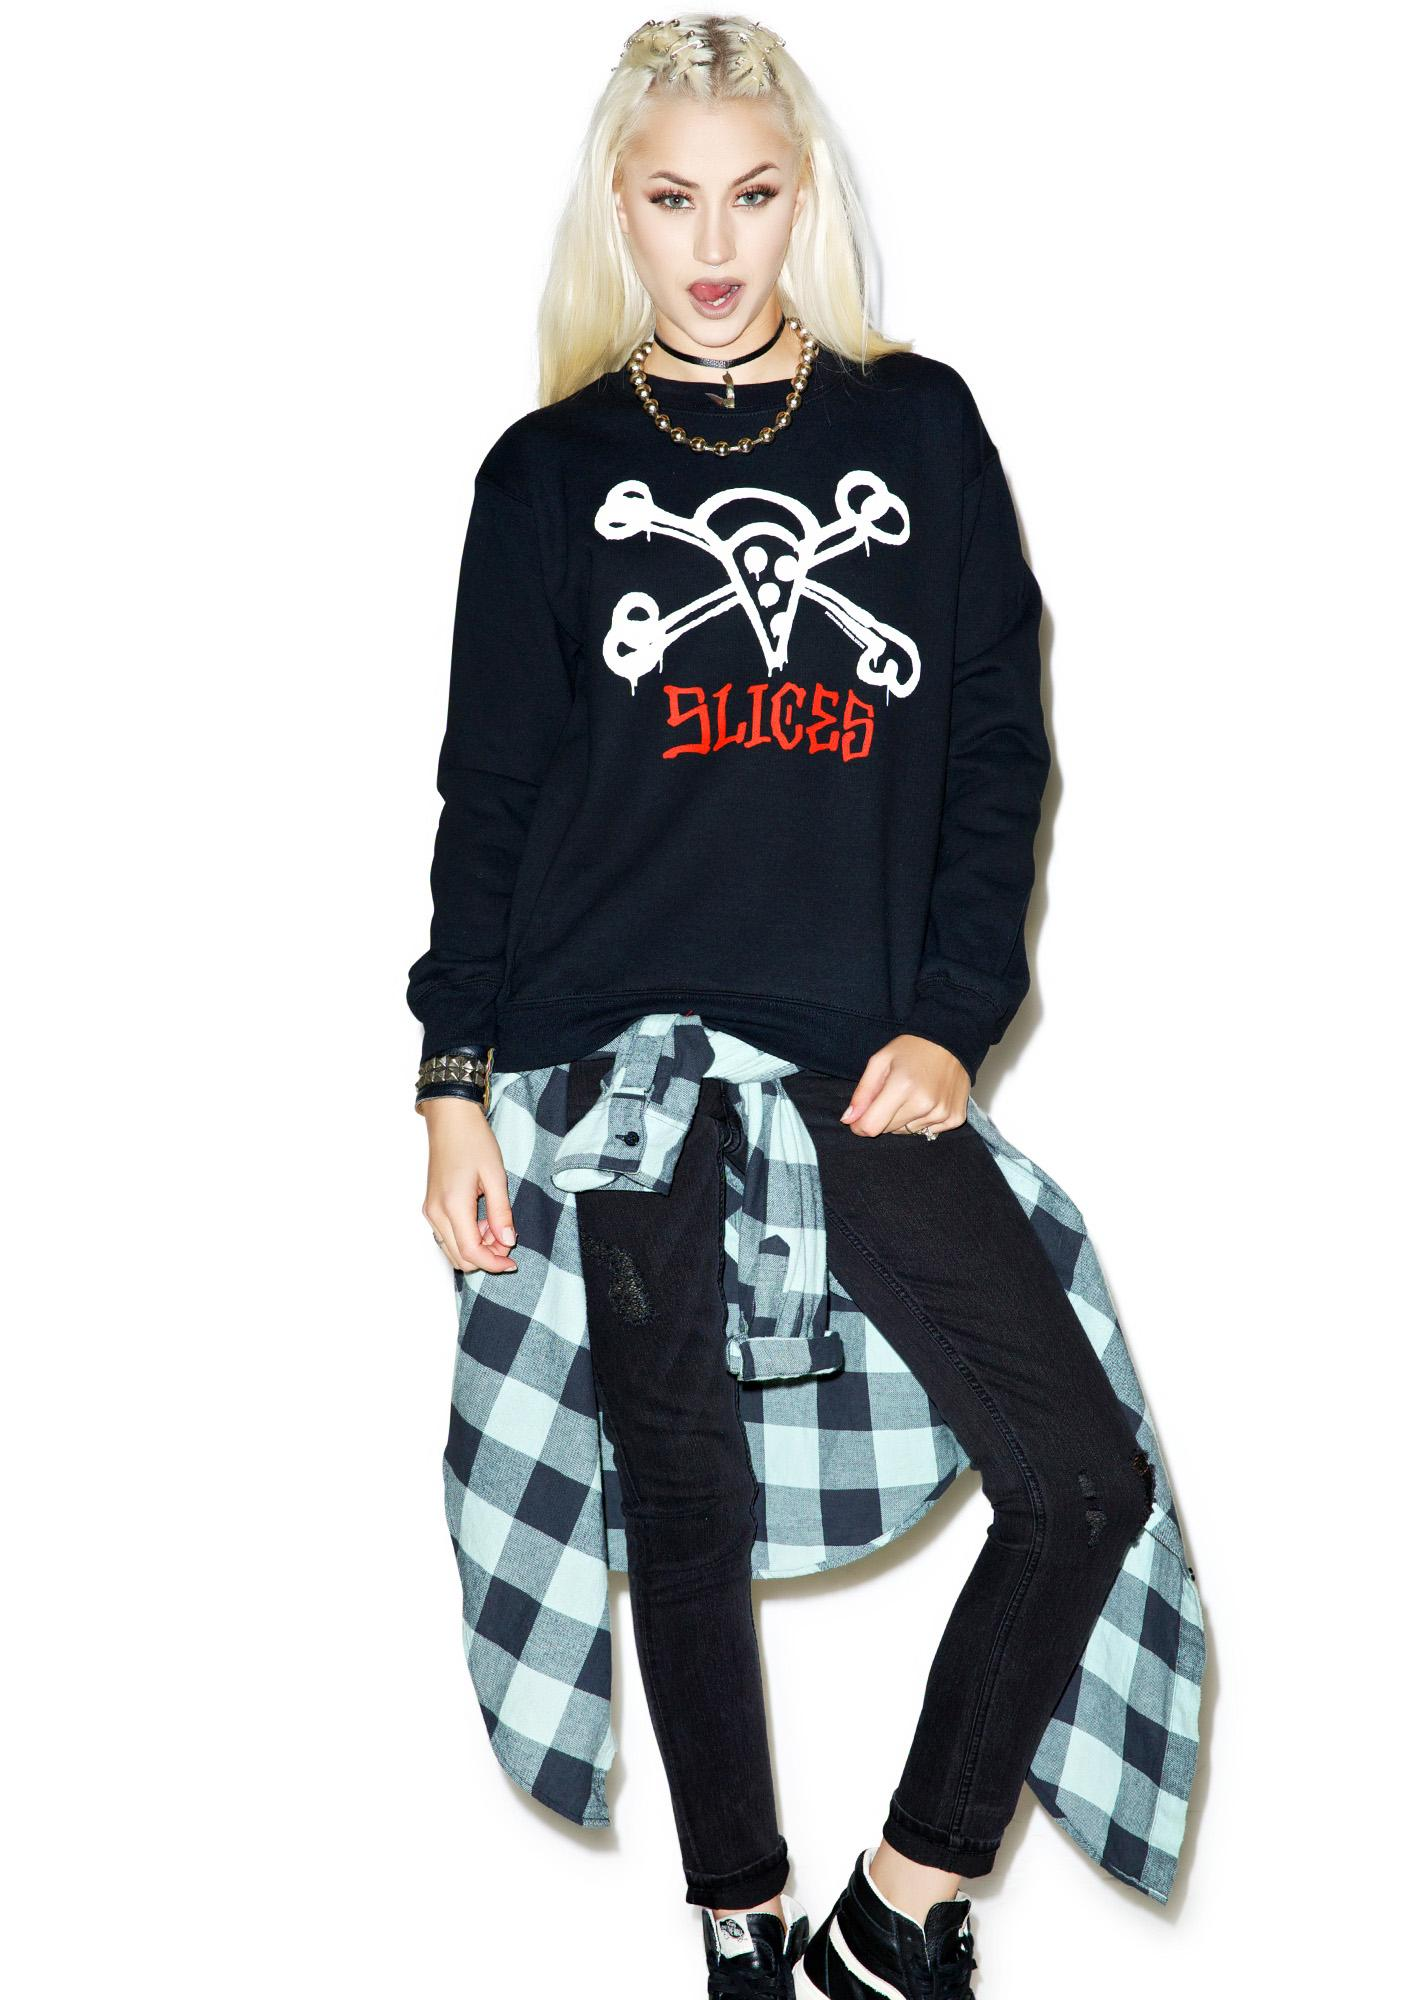 Pizzanista Deadly Slices Sweater